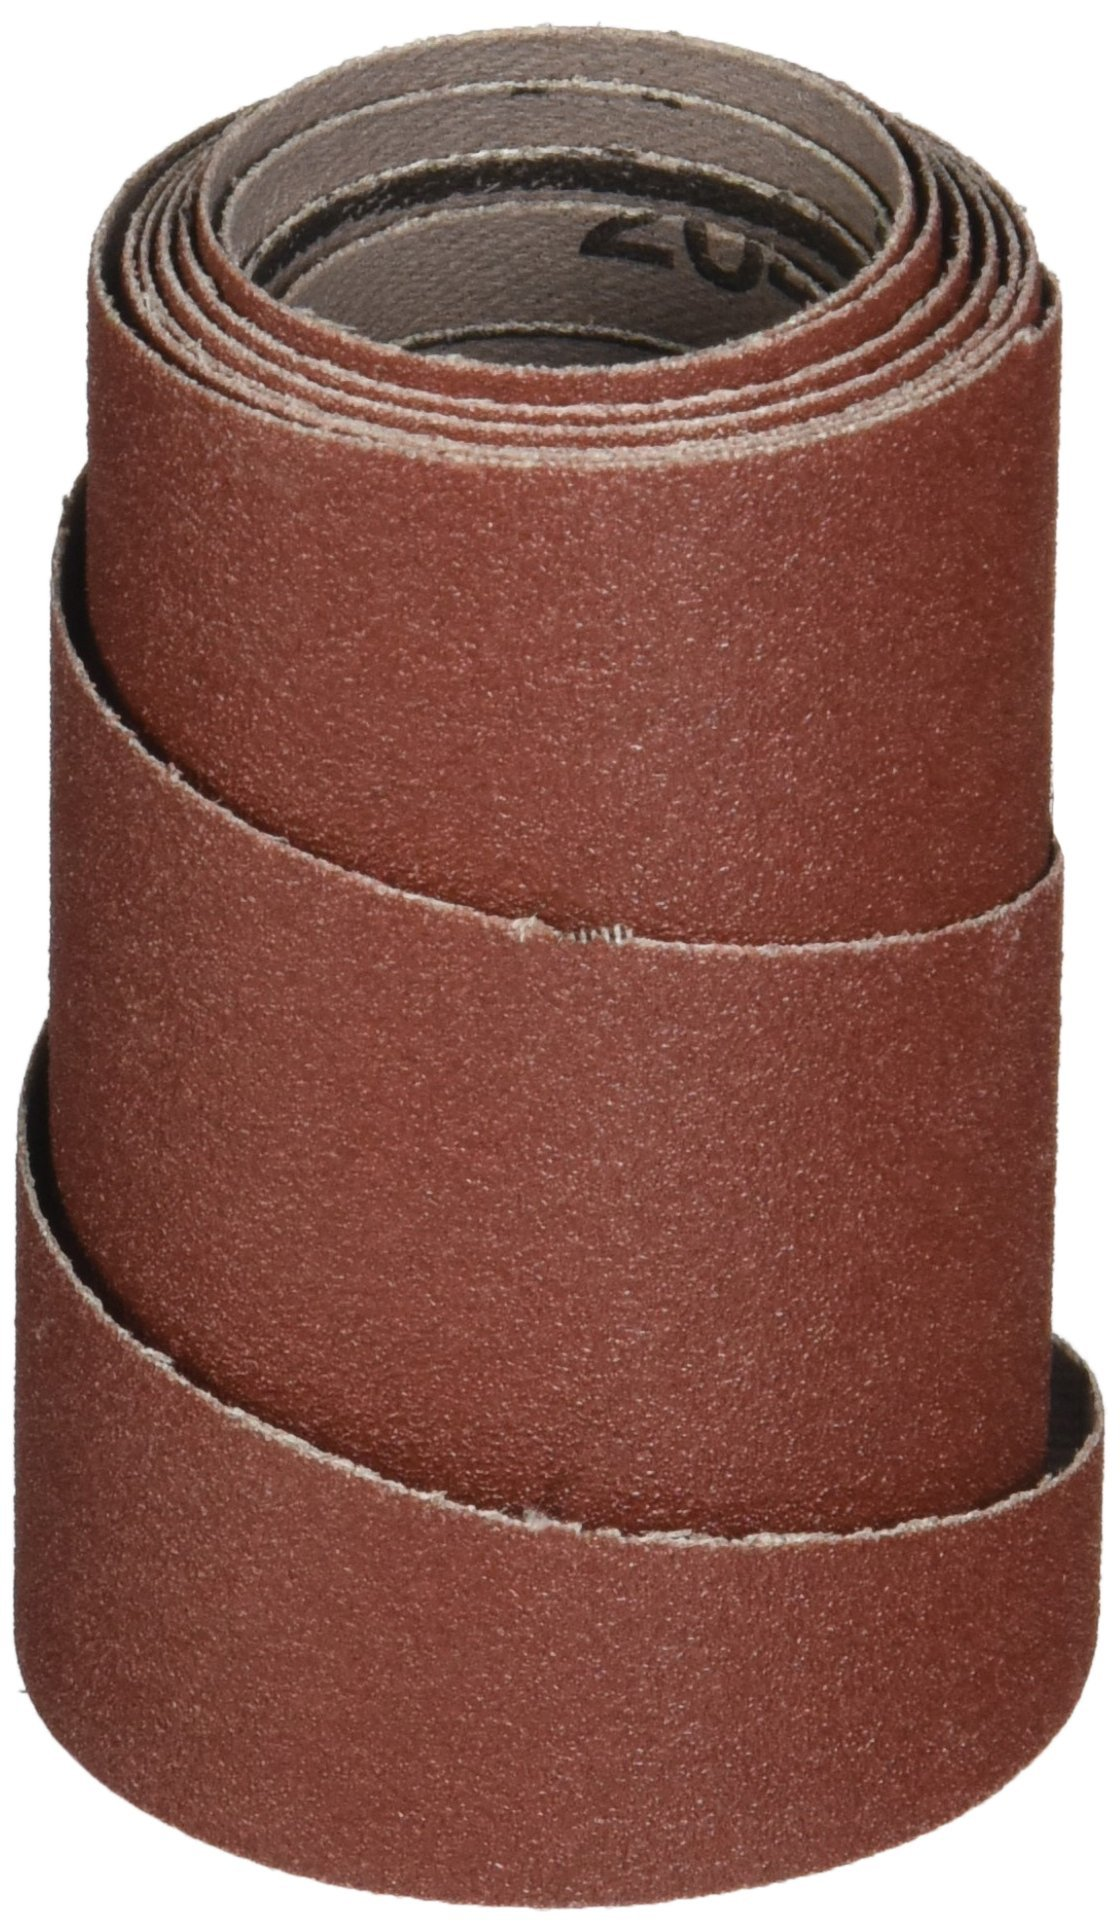 Performax 60-1120 120-Grit Abrasive Strips for Performax 10-20 Plus Drum Sander, 6-Pack